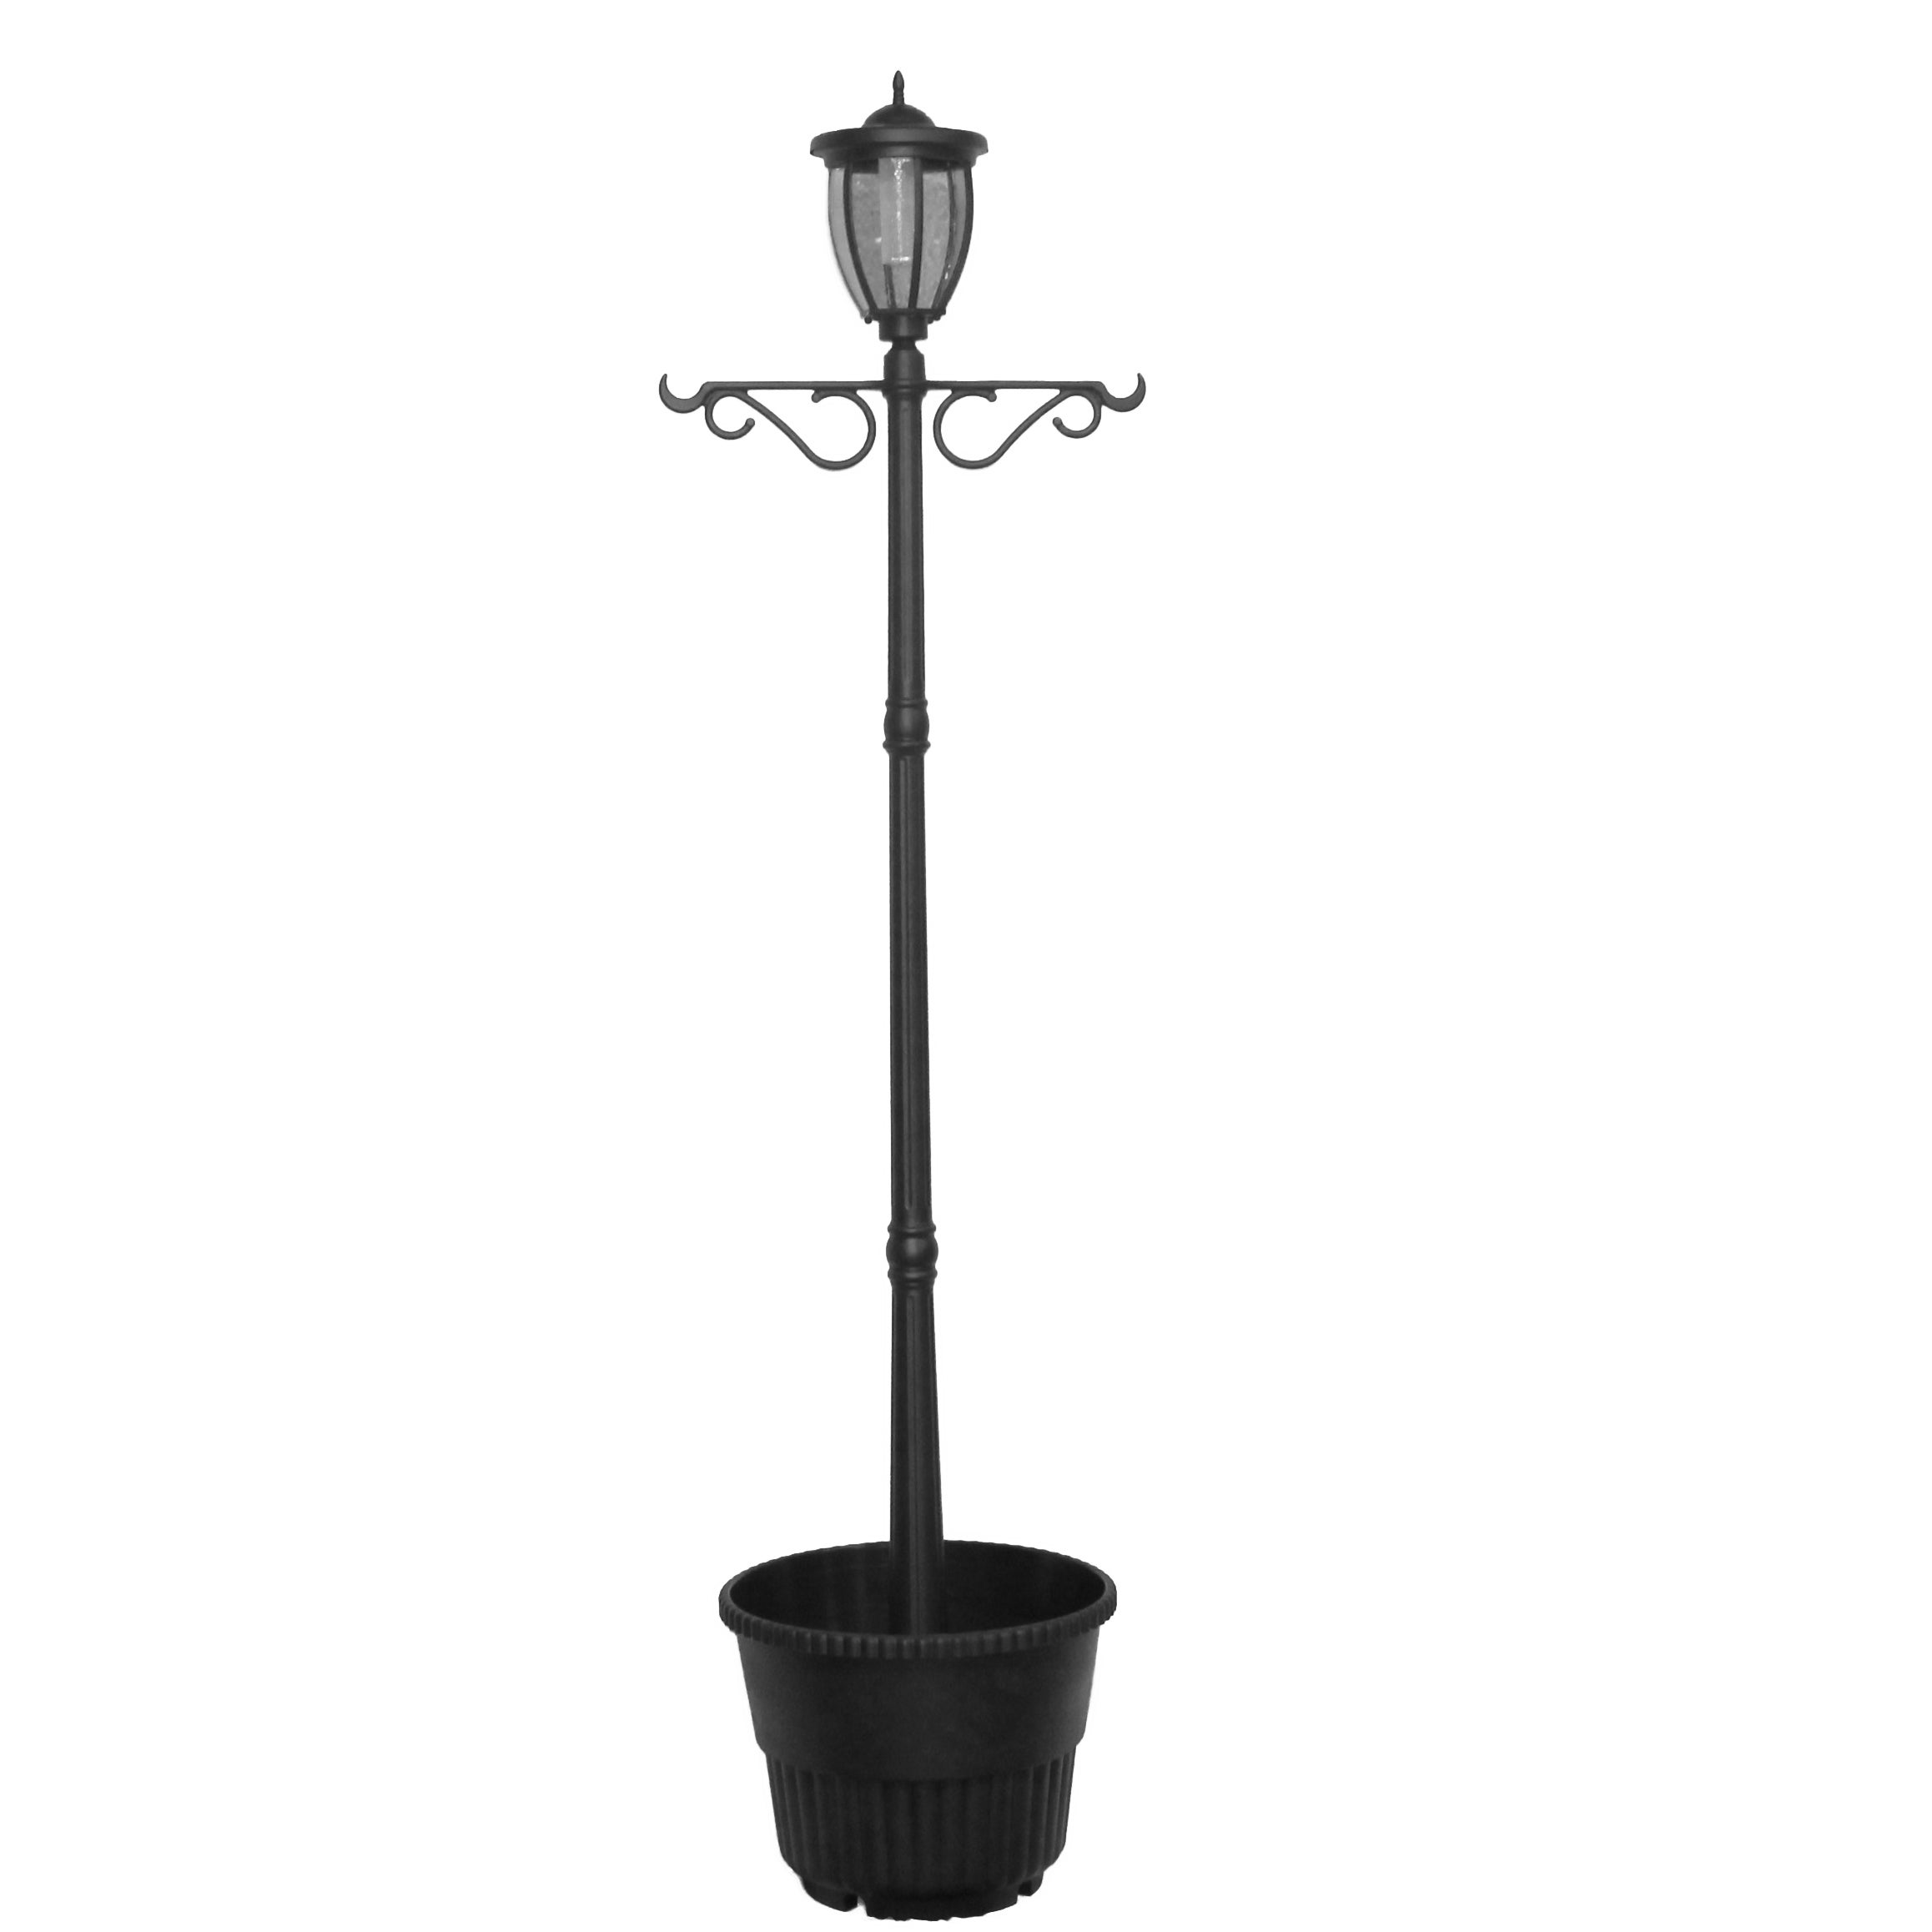 Kenwick Solar Lamp Post And Planter